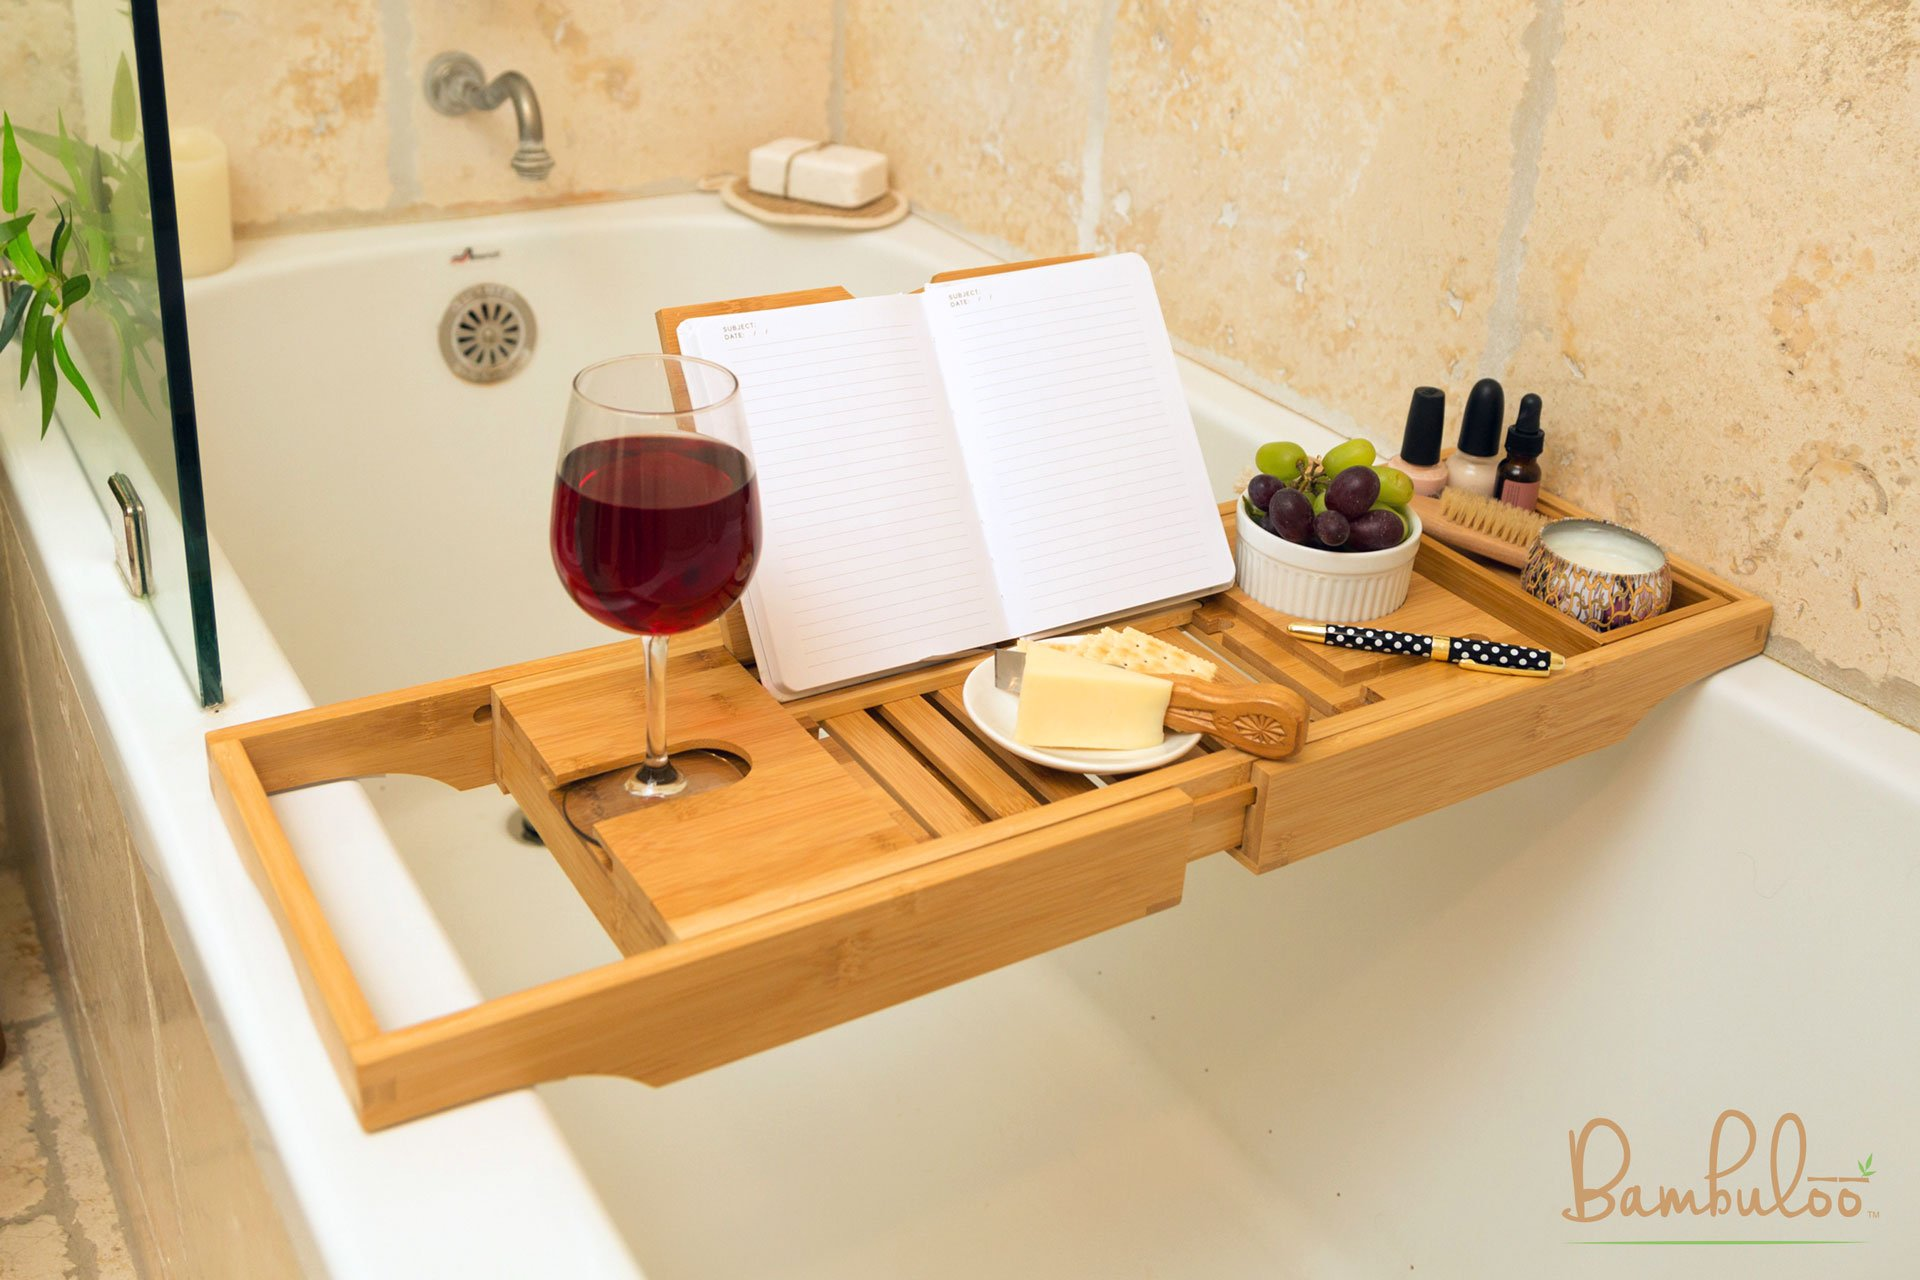 Bathtub Caddy and Bed Tray Combo - Premium Bamboo Wood with 2 Lavender Bath Bombs - Folding Legs/Fully Adjustable - Mold Resistant - Phone Tablet and Wine Holders for The Finest Home Spa Experience by Bambuloo (Image #3)